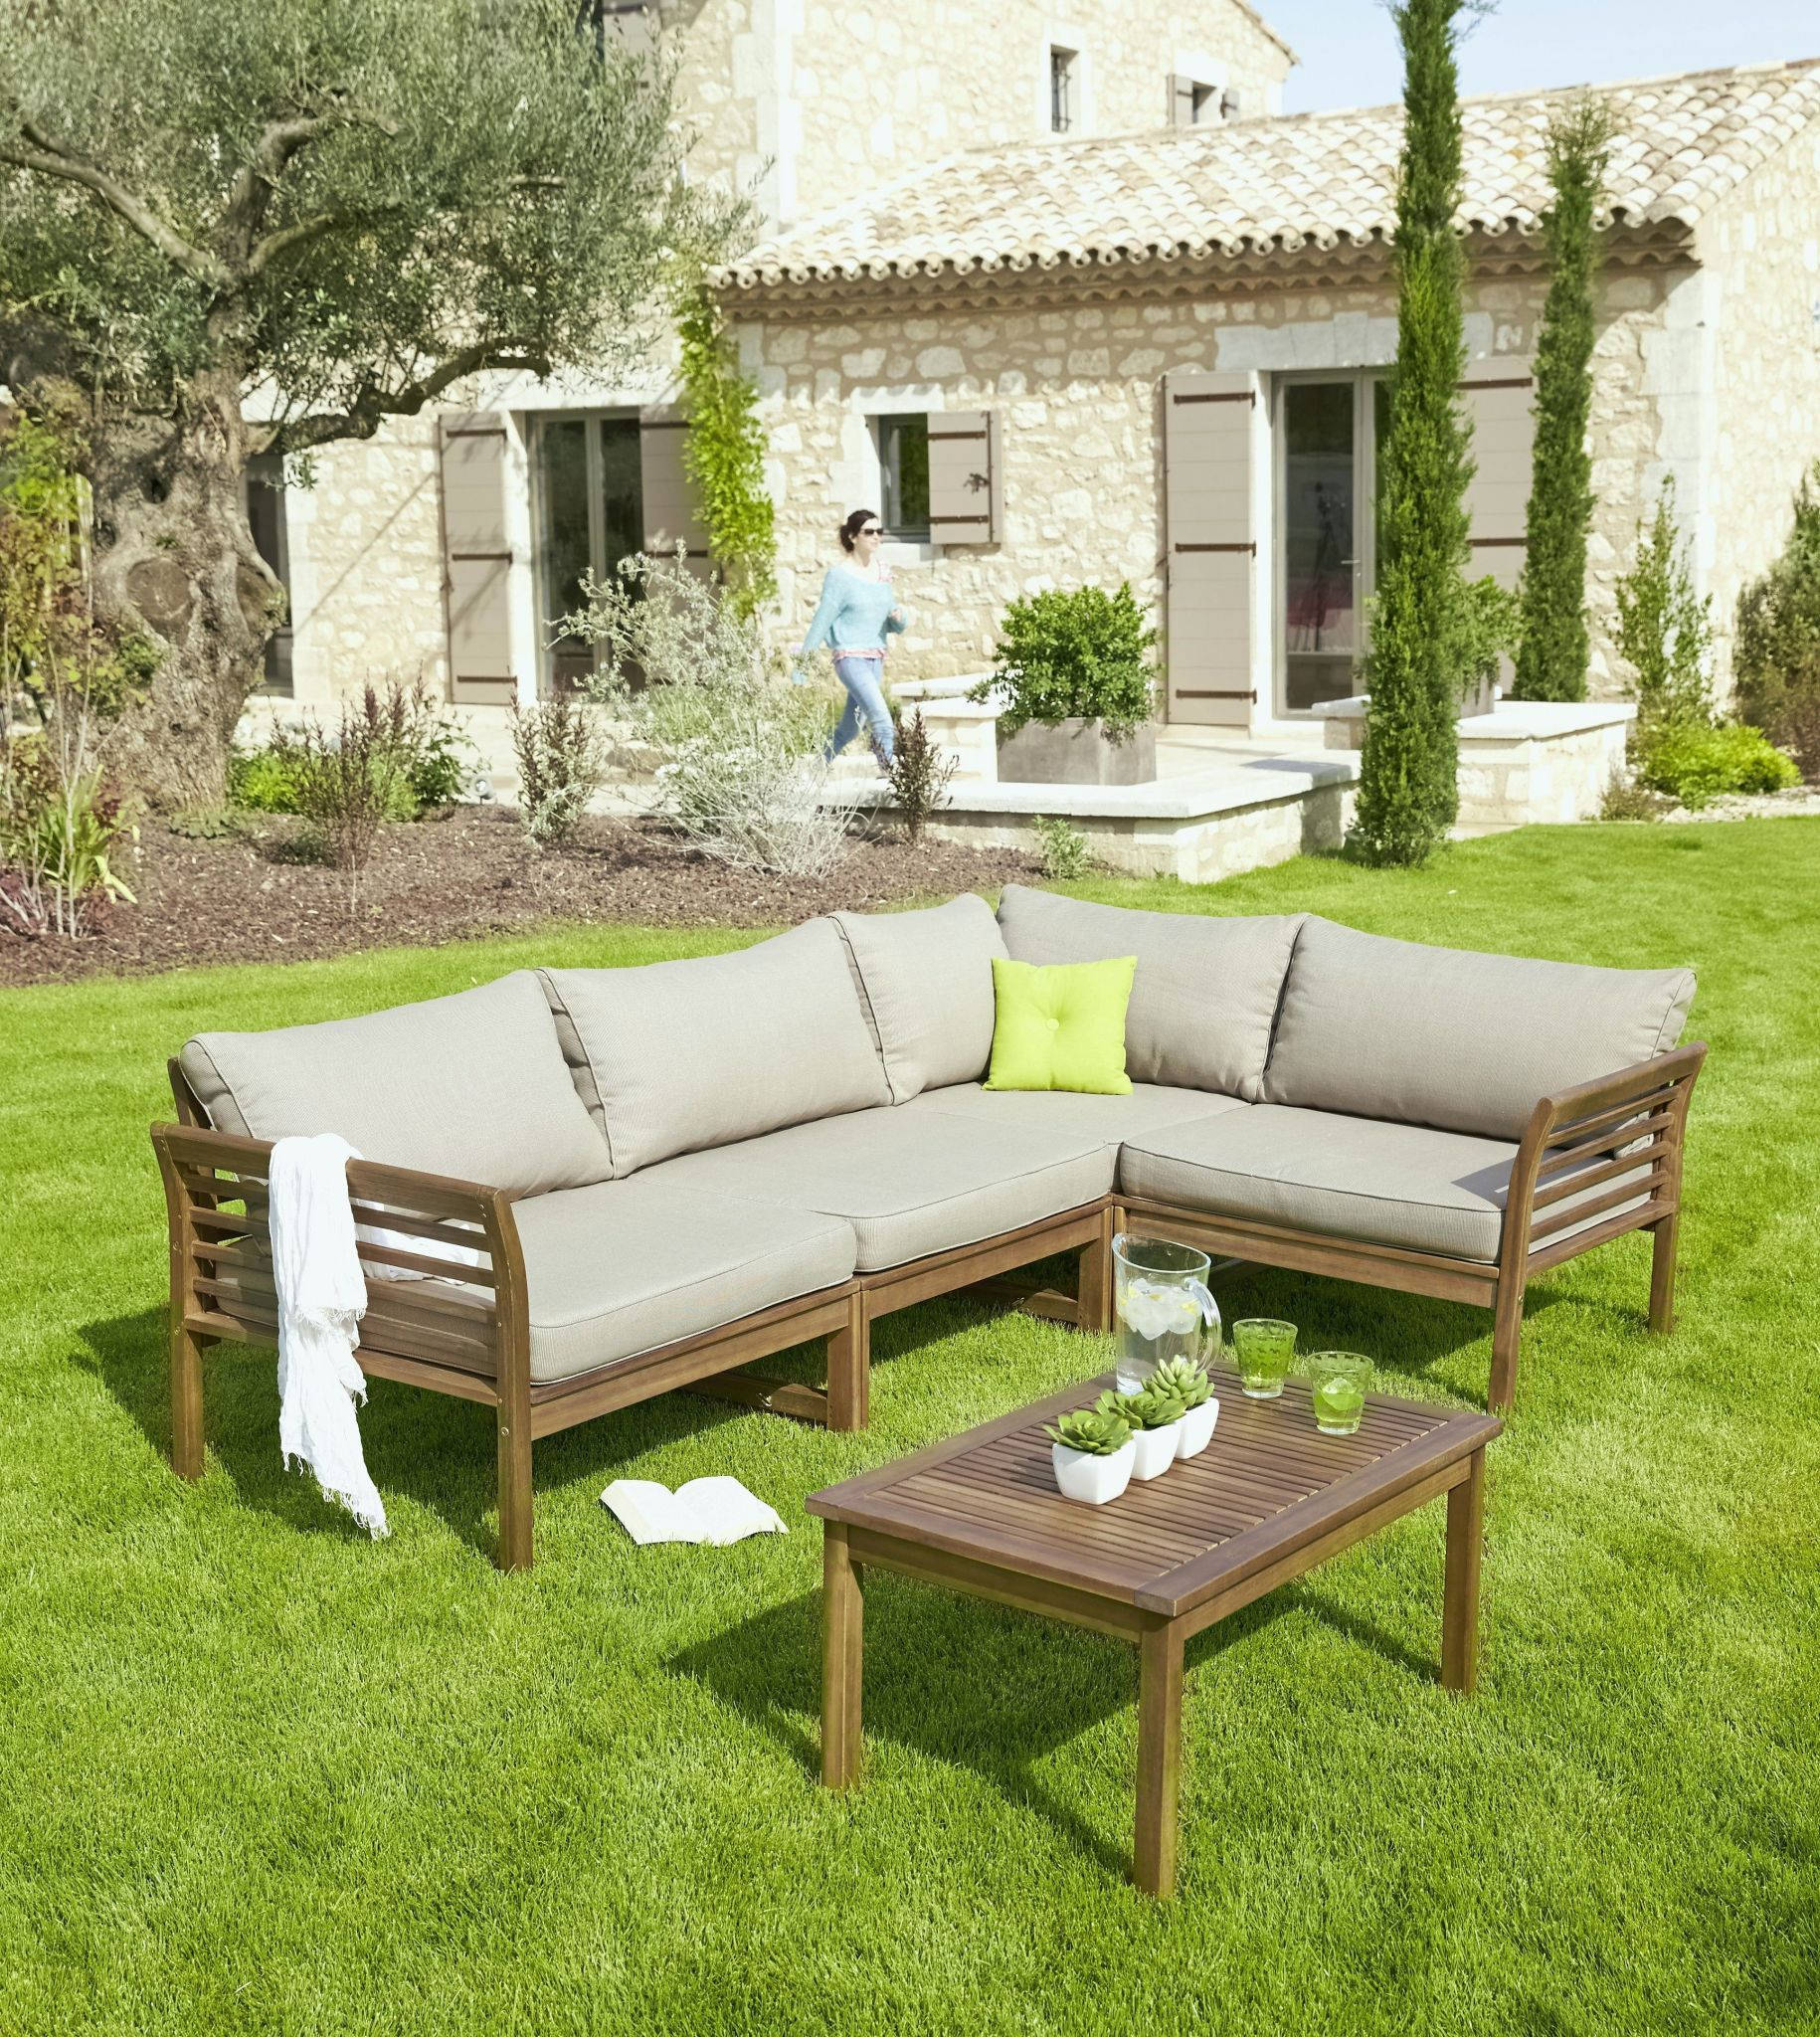 Mobilier Jardin De Luxe | Resin Patio Furniture, Outdoor ... pour Mobilier De Jardin Design De Luxe